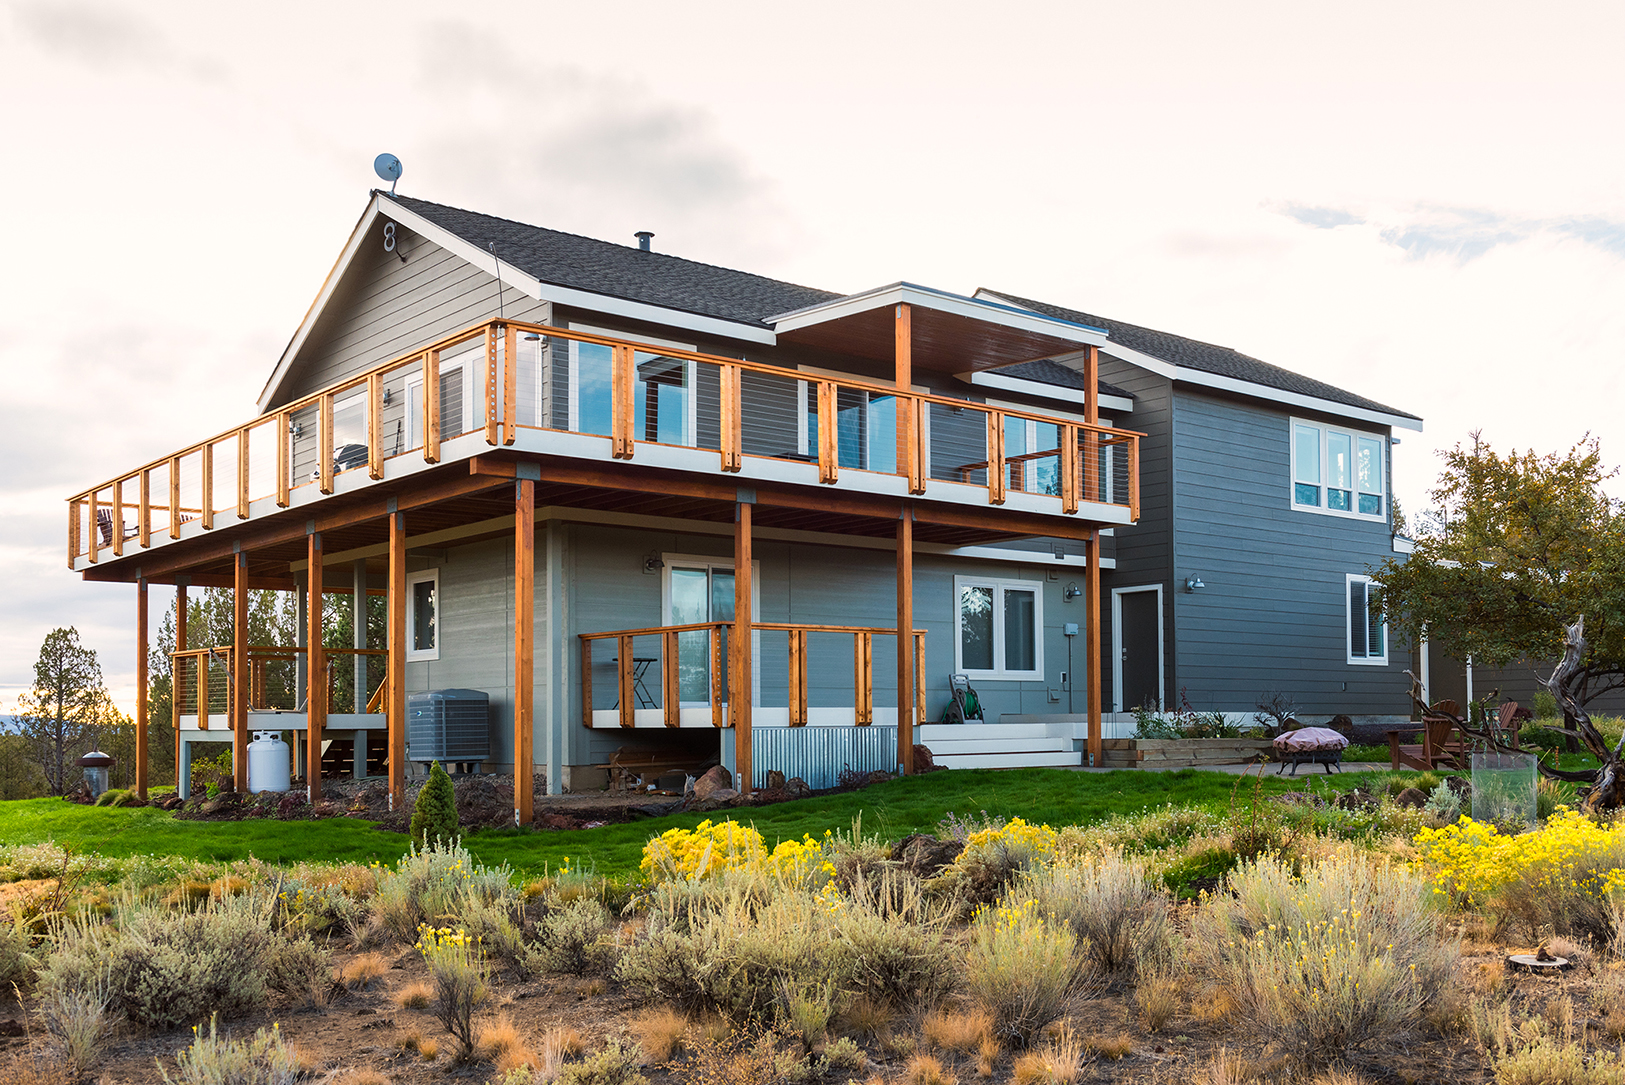 pgc-building-design-bend-oregon-parno-rgb-1625px-PGC-8360